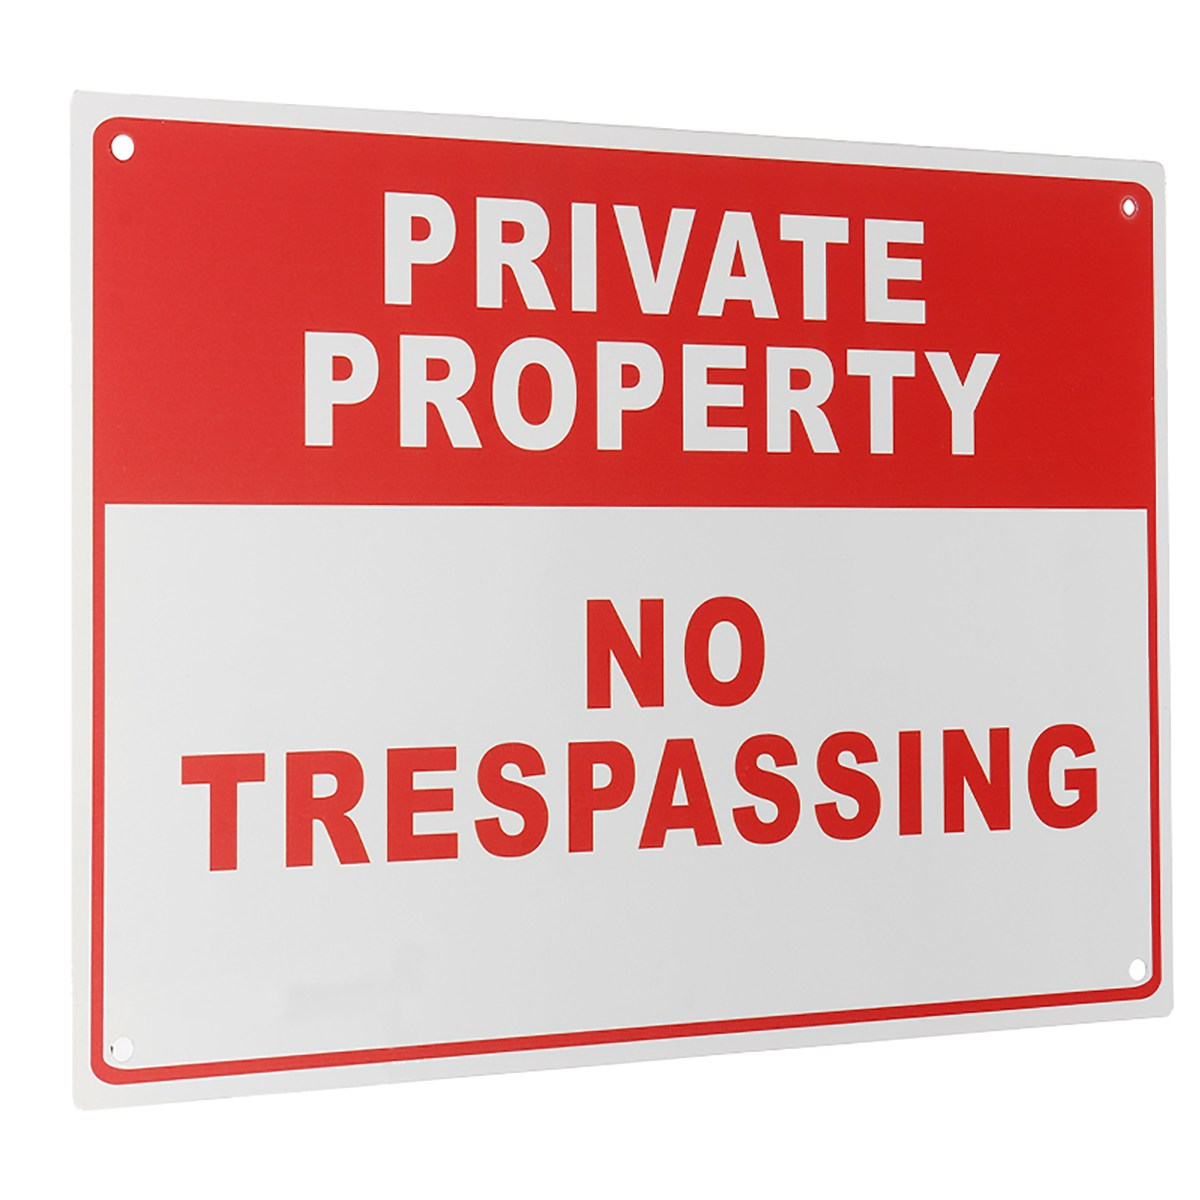 NEW Safurance Private Property No Trespassing Metal Safety Warning Sign 4 Drilled Hole 20x30cm Home Security safurance no soliciting no exceptions front door security sign waterproof 11 x7 28x18cm workplace safety